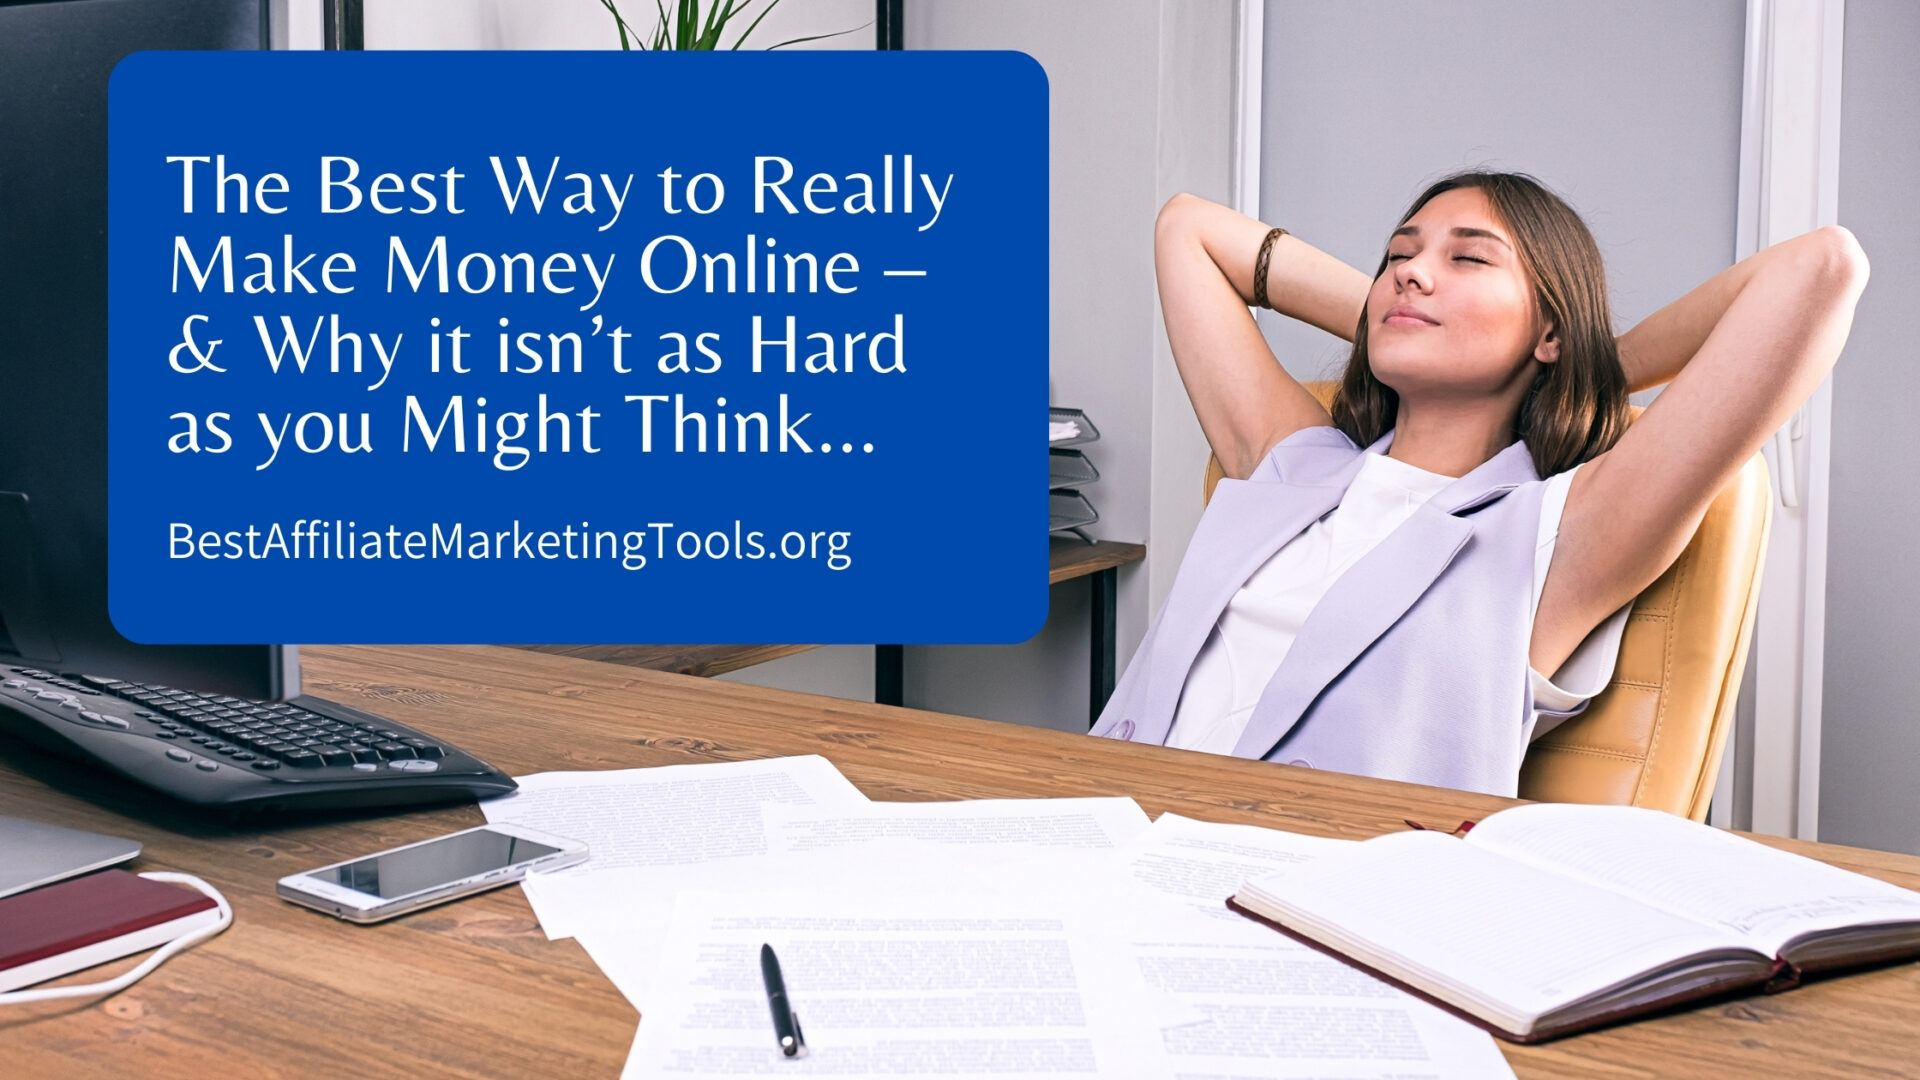 The Best Way to Really Make Money Online – & Why it isn't as Hard as you Might Think…